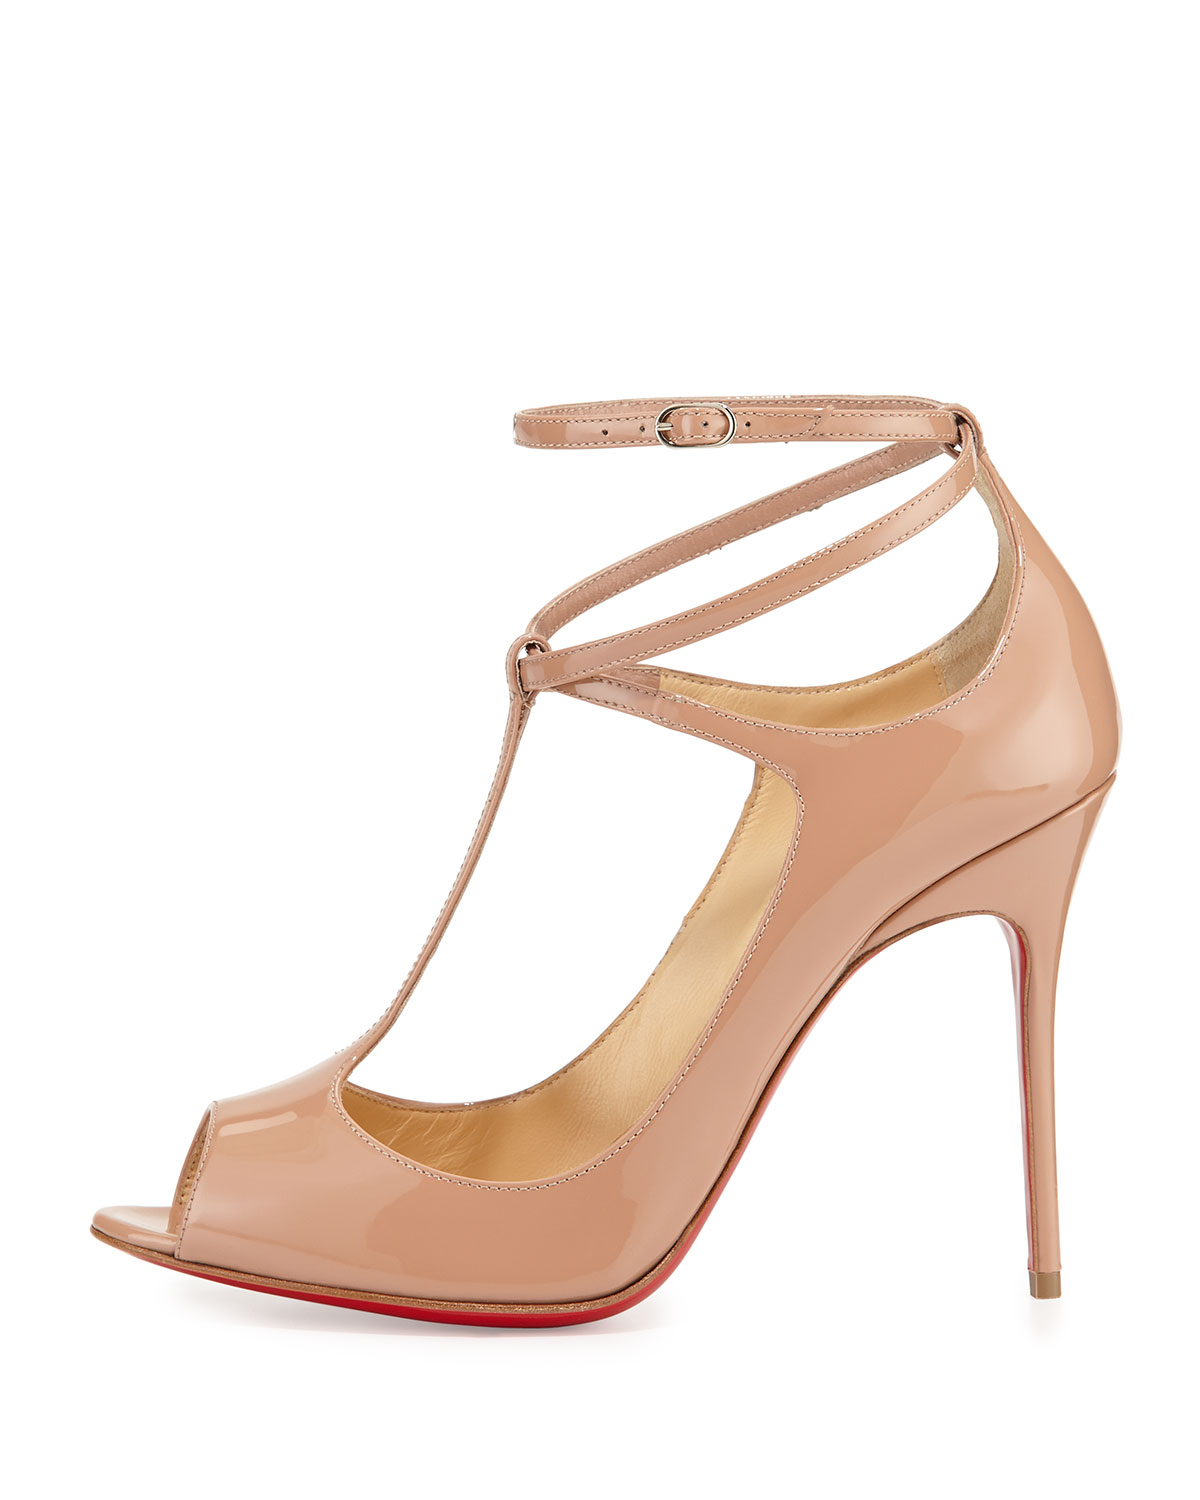 louboutin shoe replica - christian louboutin patent leather T-strap pumps Beige peep toes ...